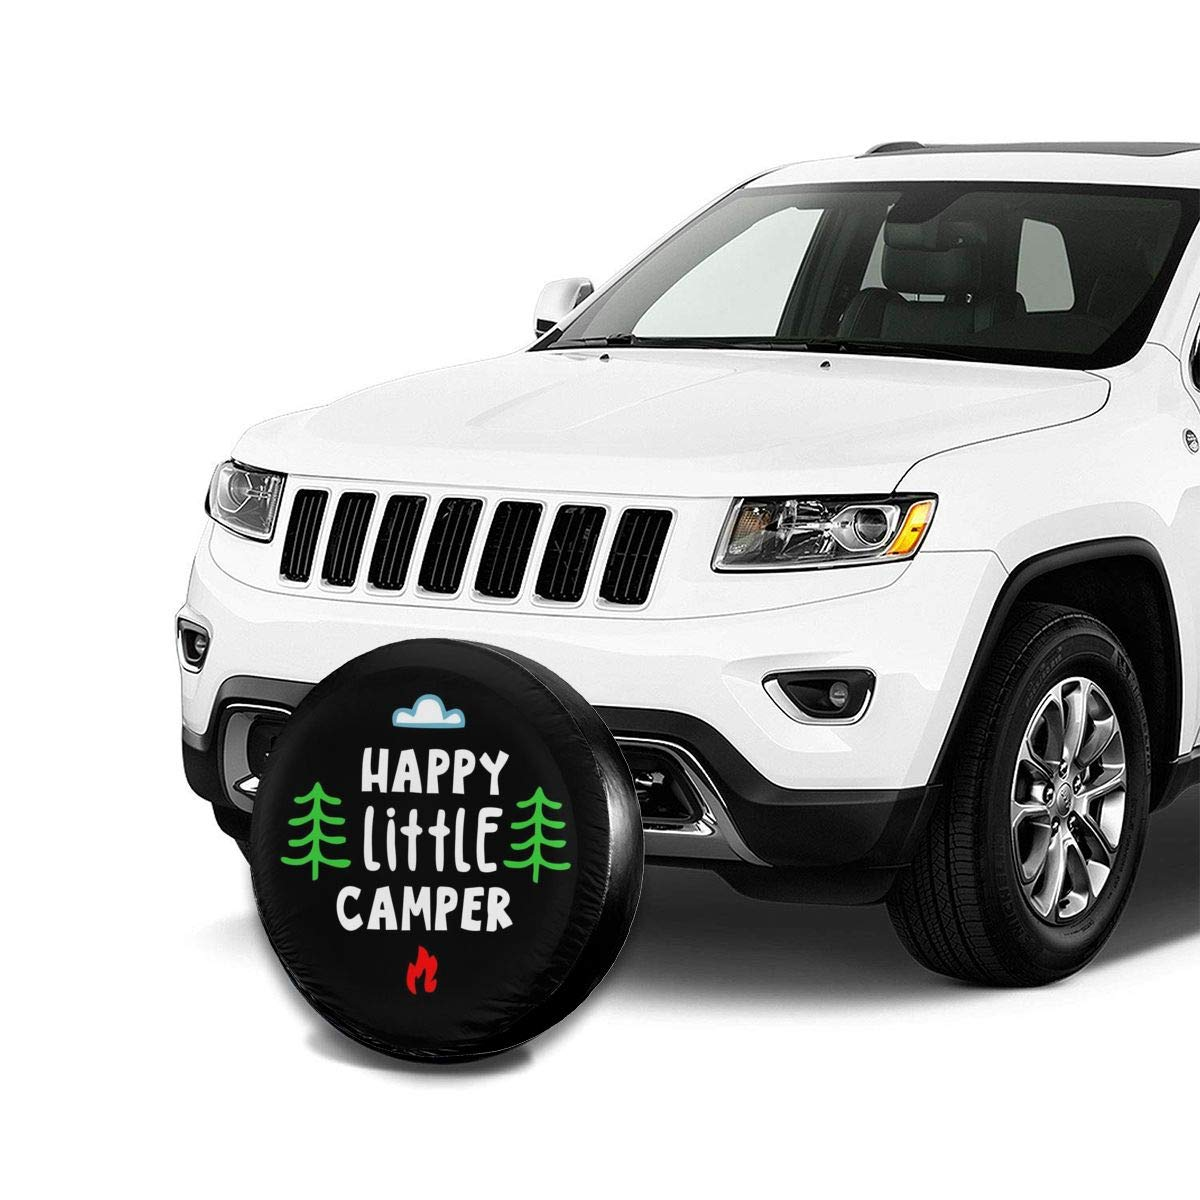 Truck and Many Vehicles 14 15 16 17 SUV NFREYA Spare Tire Cover Happy Camper Polyester Universal Waterproof Sunscreen Wheel Covers for Jeep RV Trailer